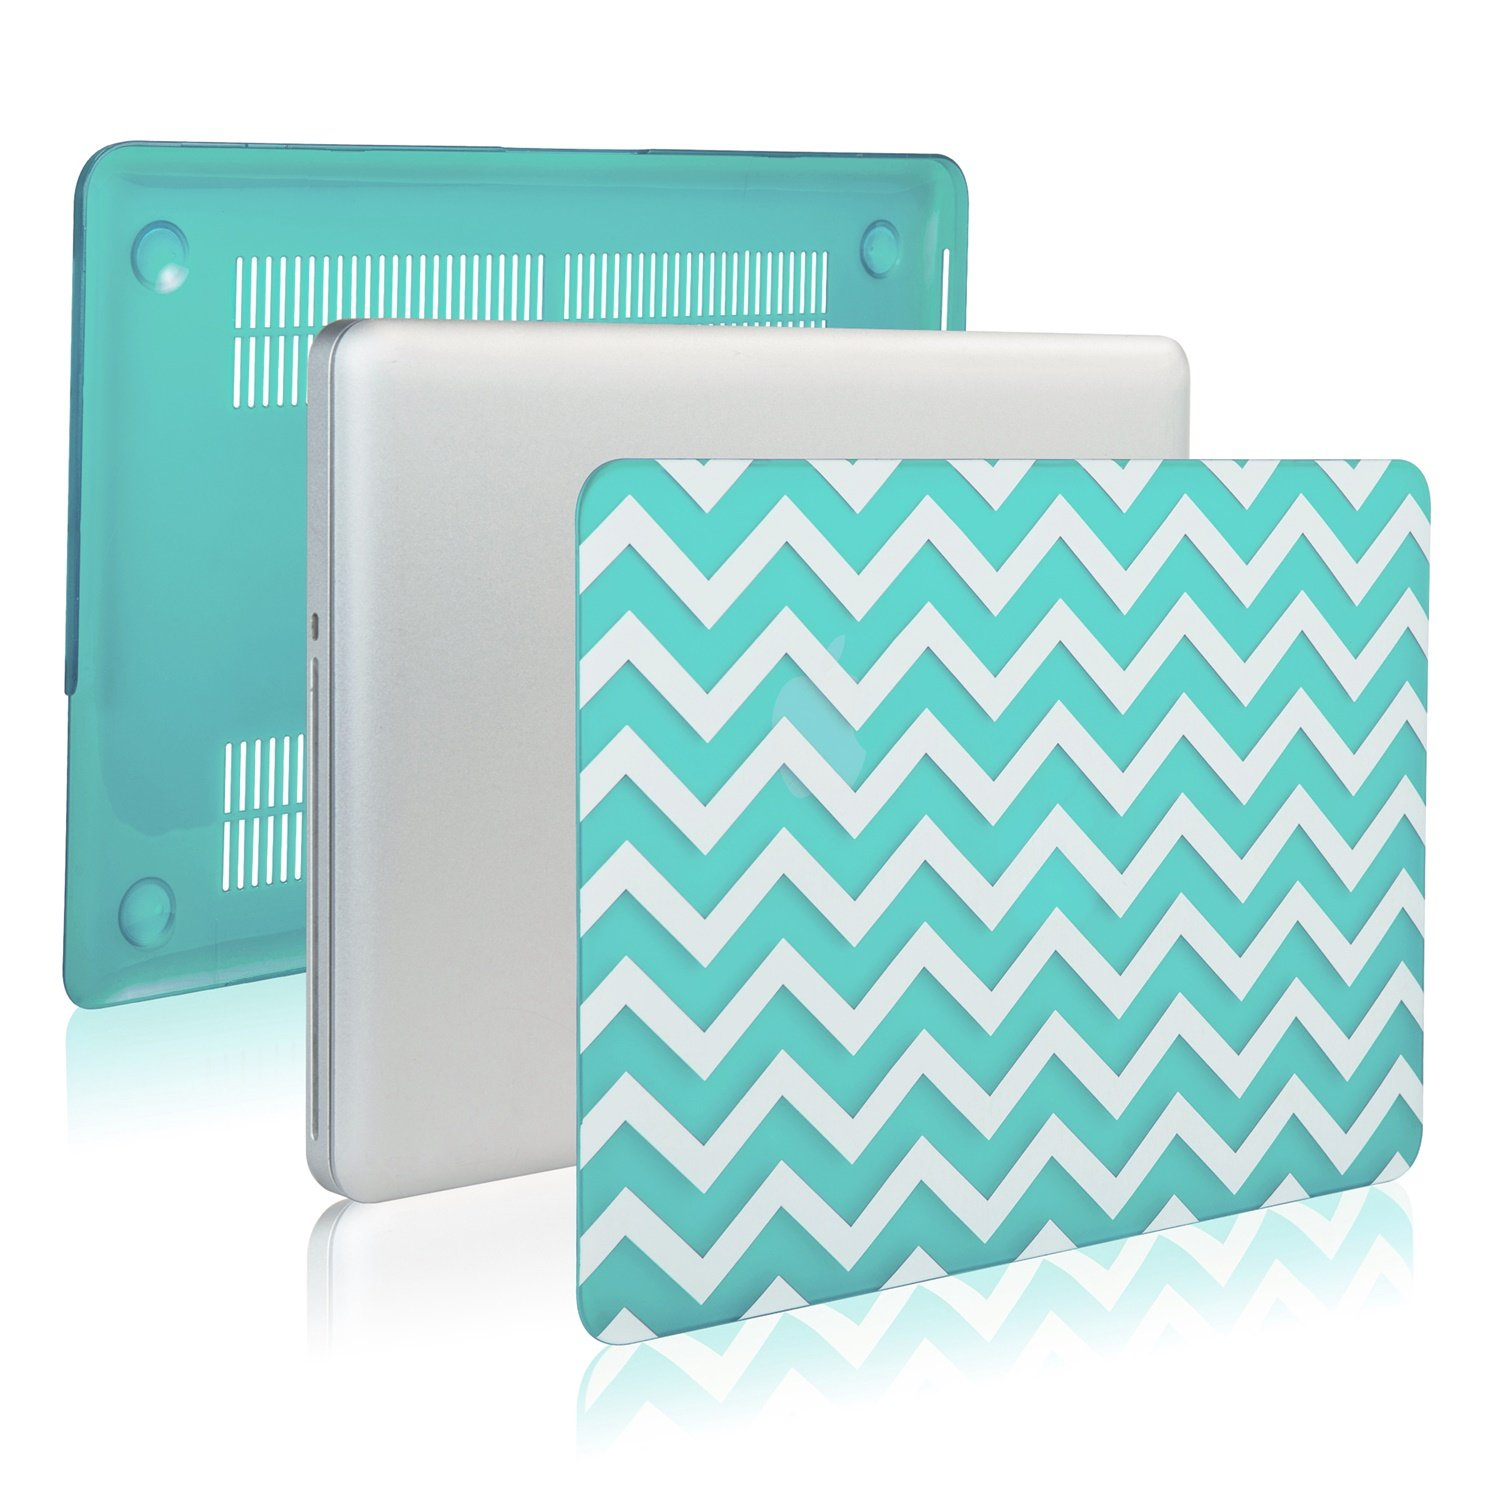 TopCase Chevron Series Hot Blue/TurquoiseUltra Slim Light Weight Rubberized Hard Case Cover for MacBook Air 11'' Model: A1370 and A1465 - with TopCase Chevron Mouse Pad